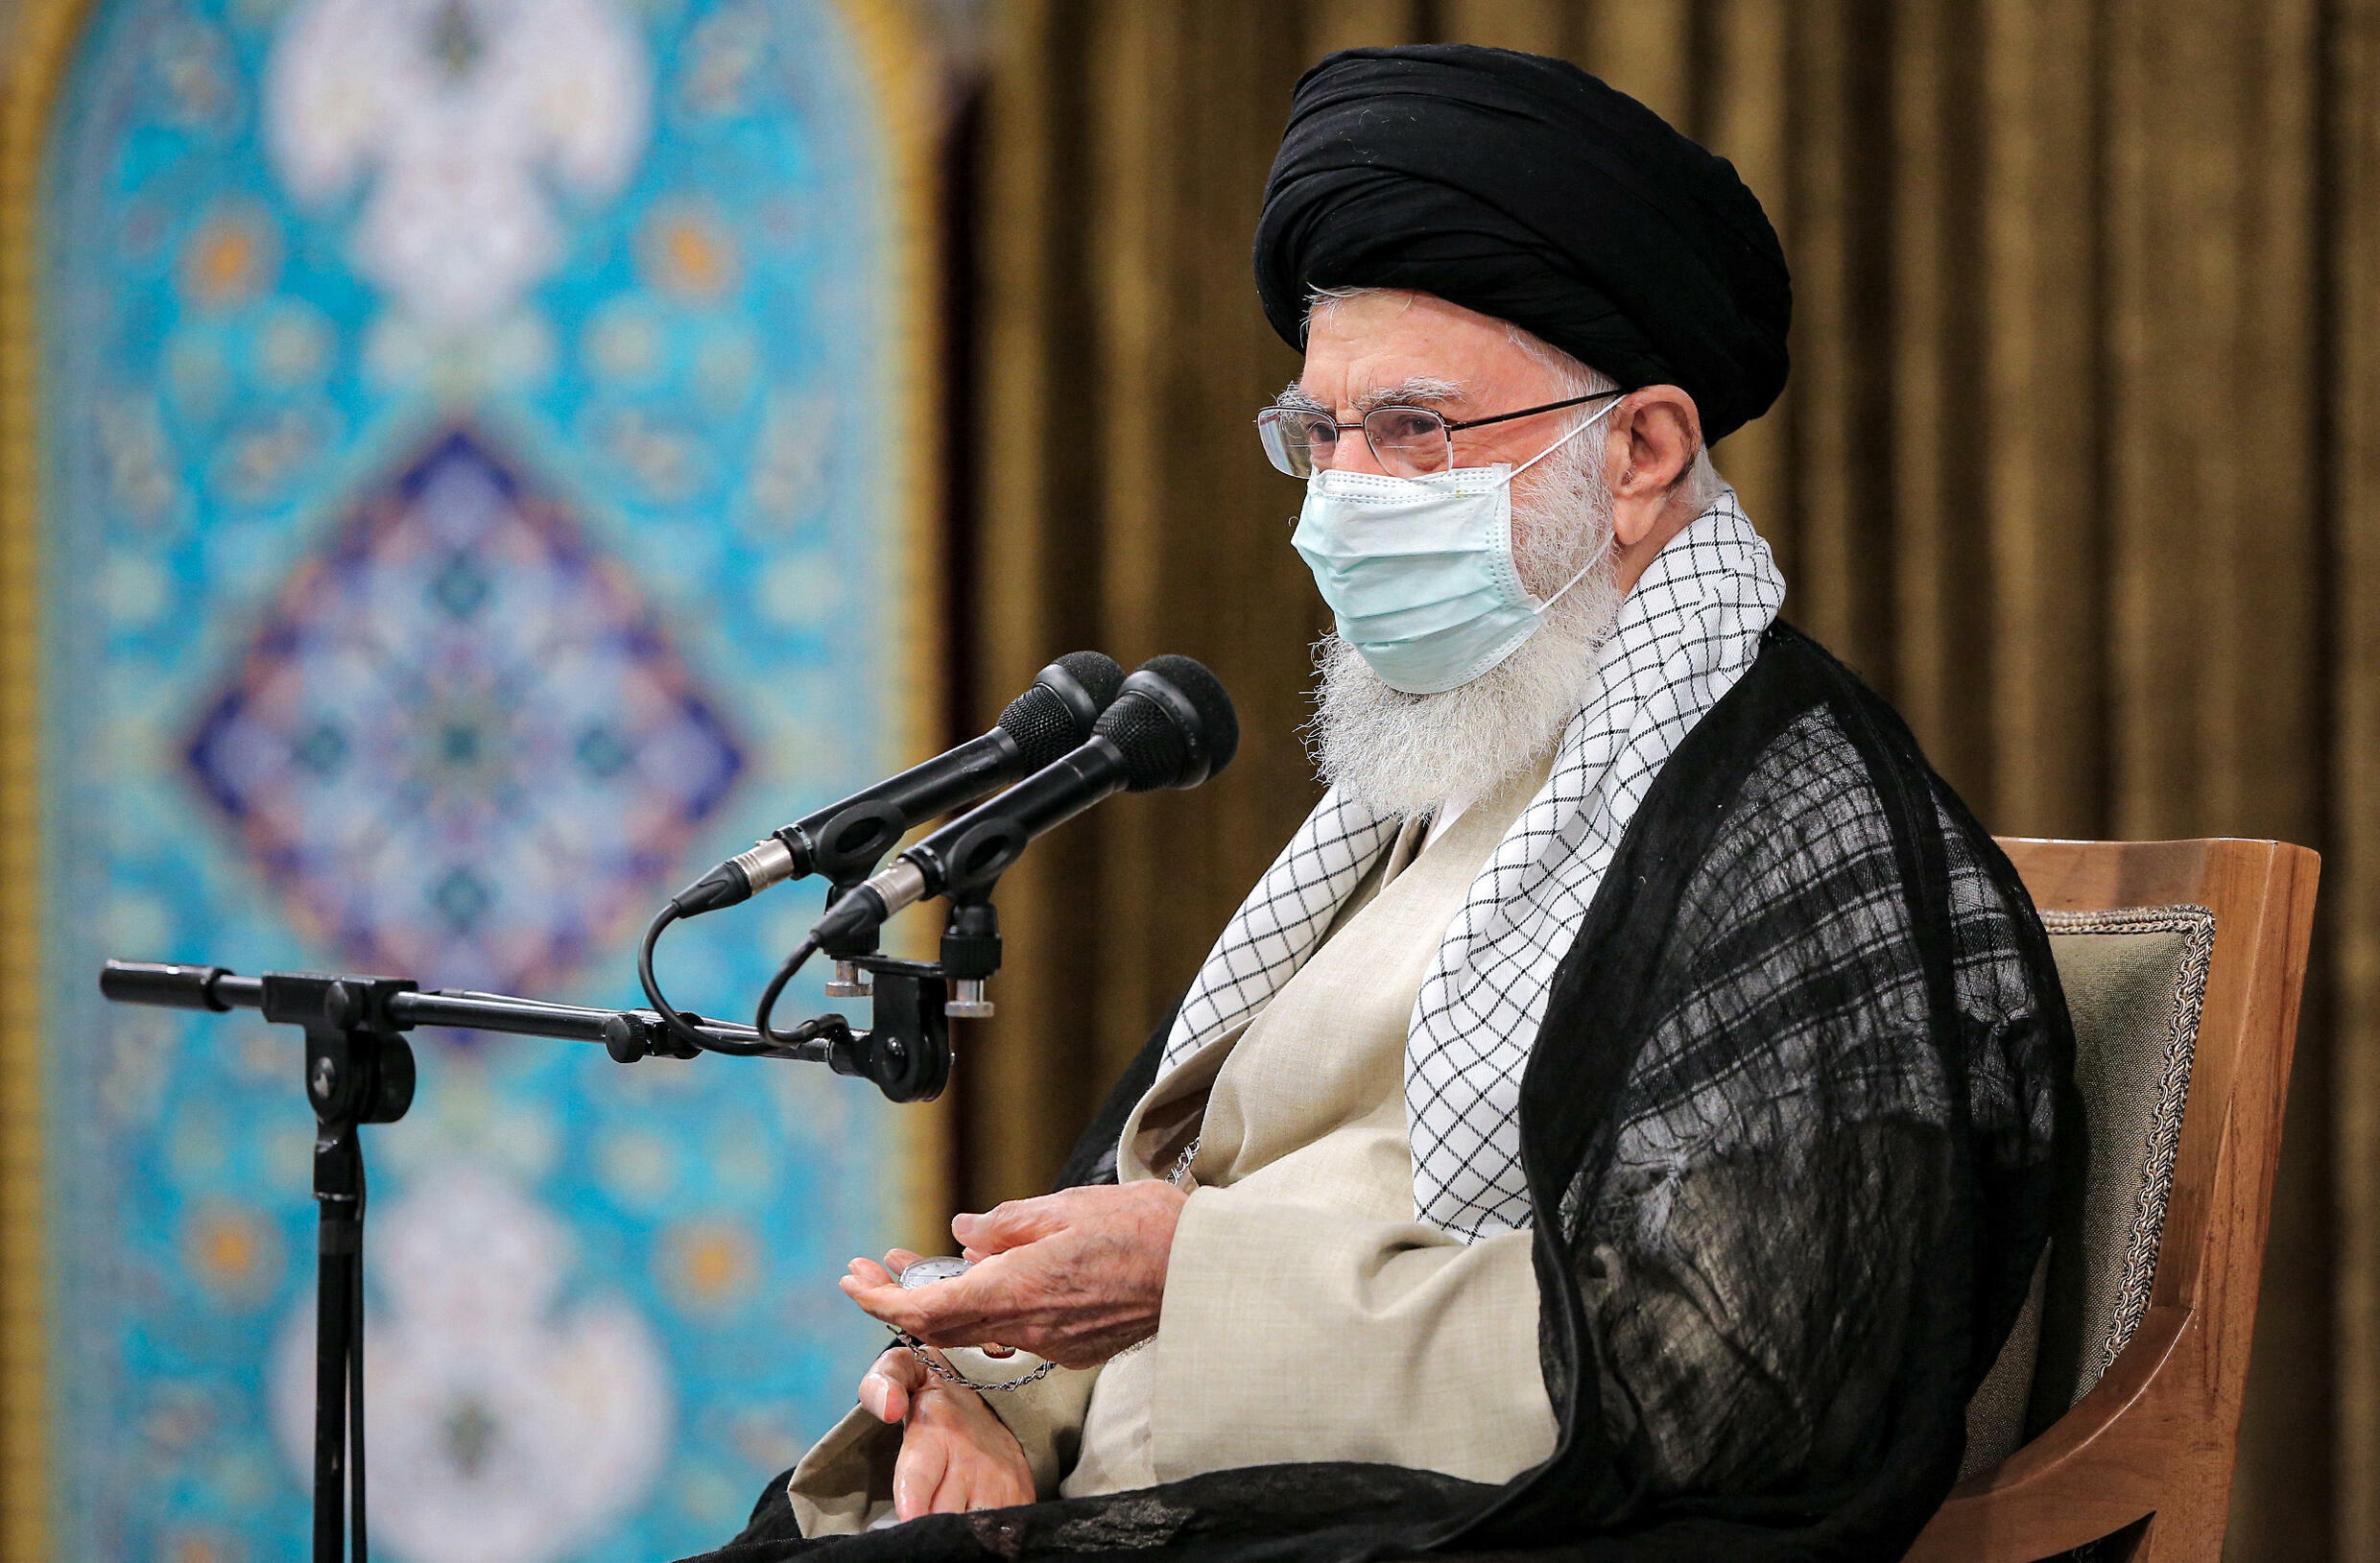 Iran's supreme leader Ayatollah Ali Khamenei sums up the lessons learned in an address to the outgoing government of President Hassan Rouhani